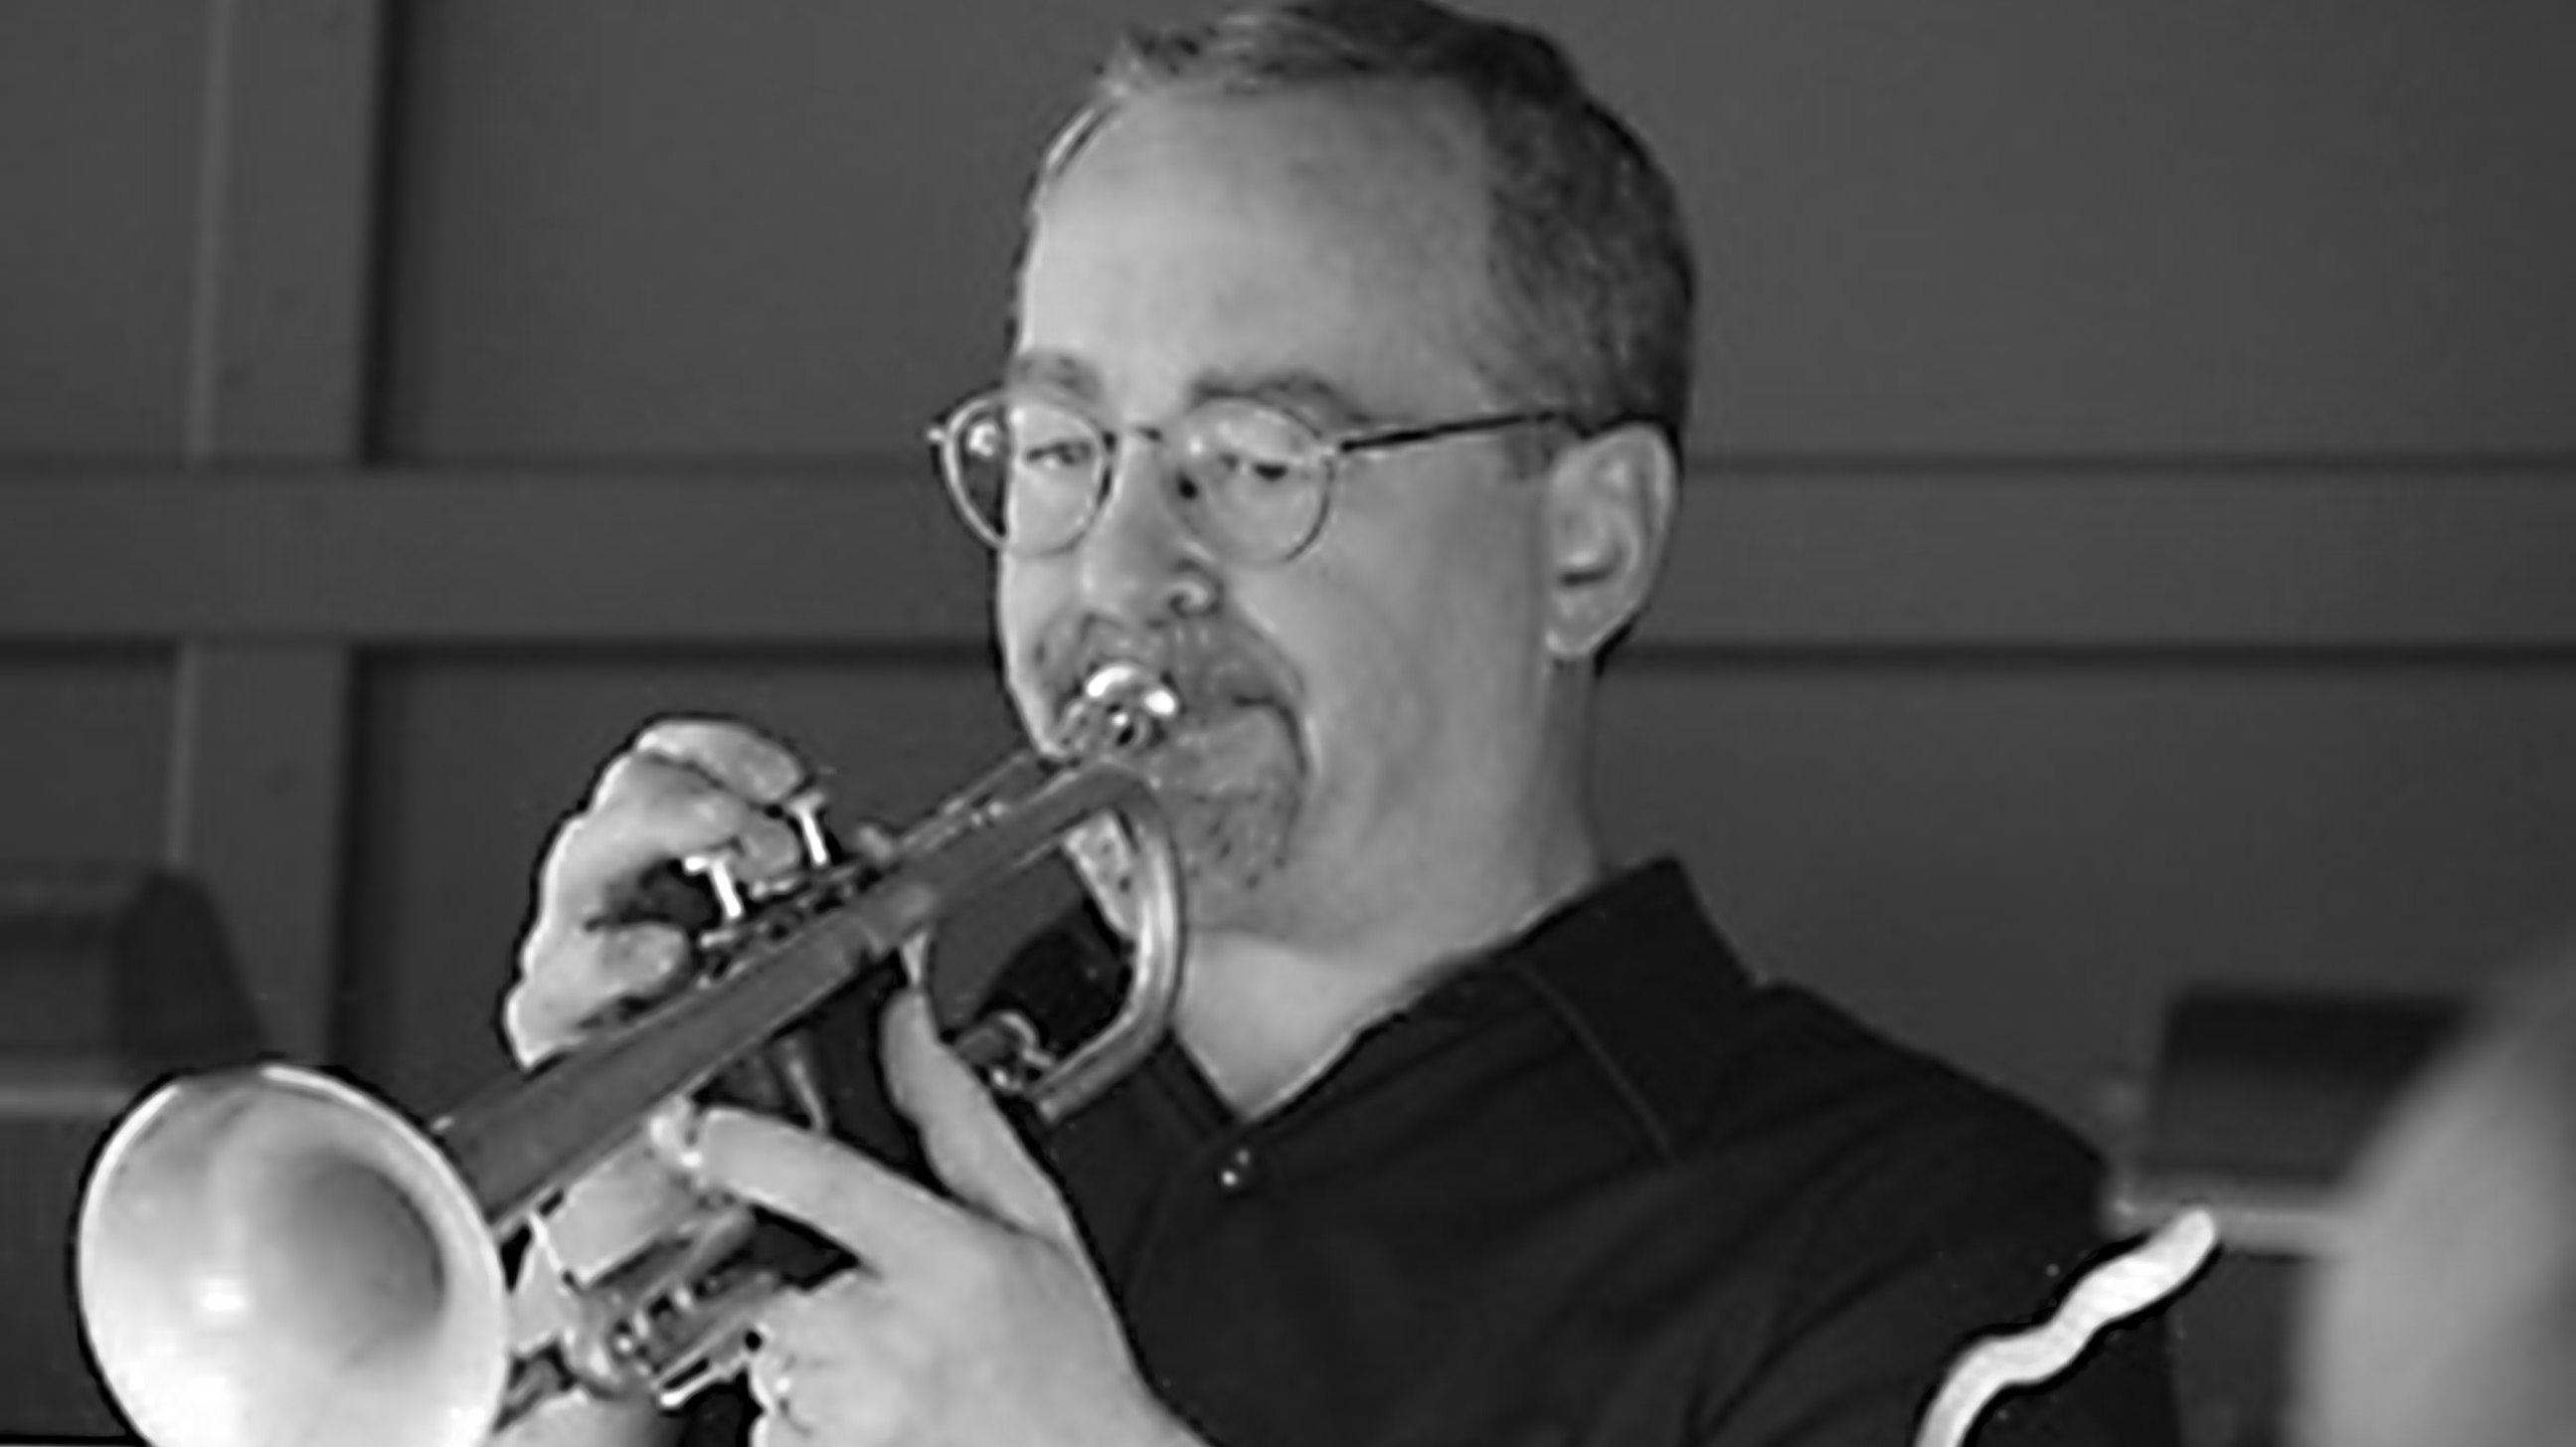 Jeff Folkens plays trumpet.